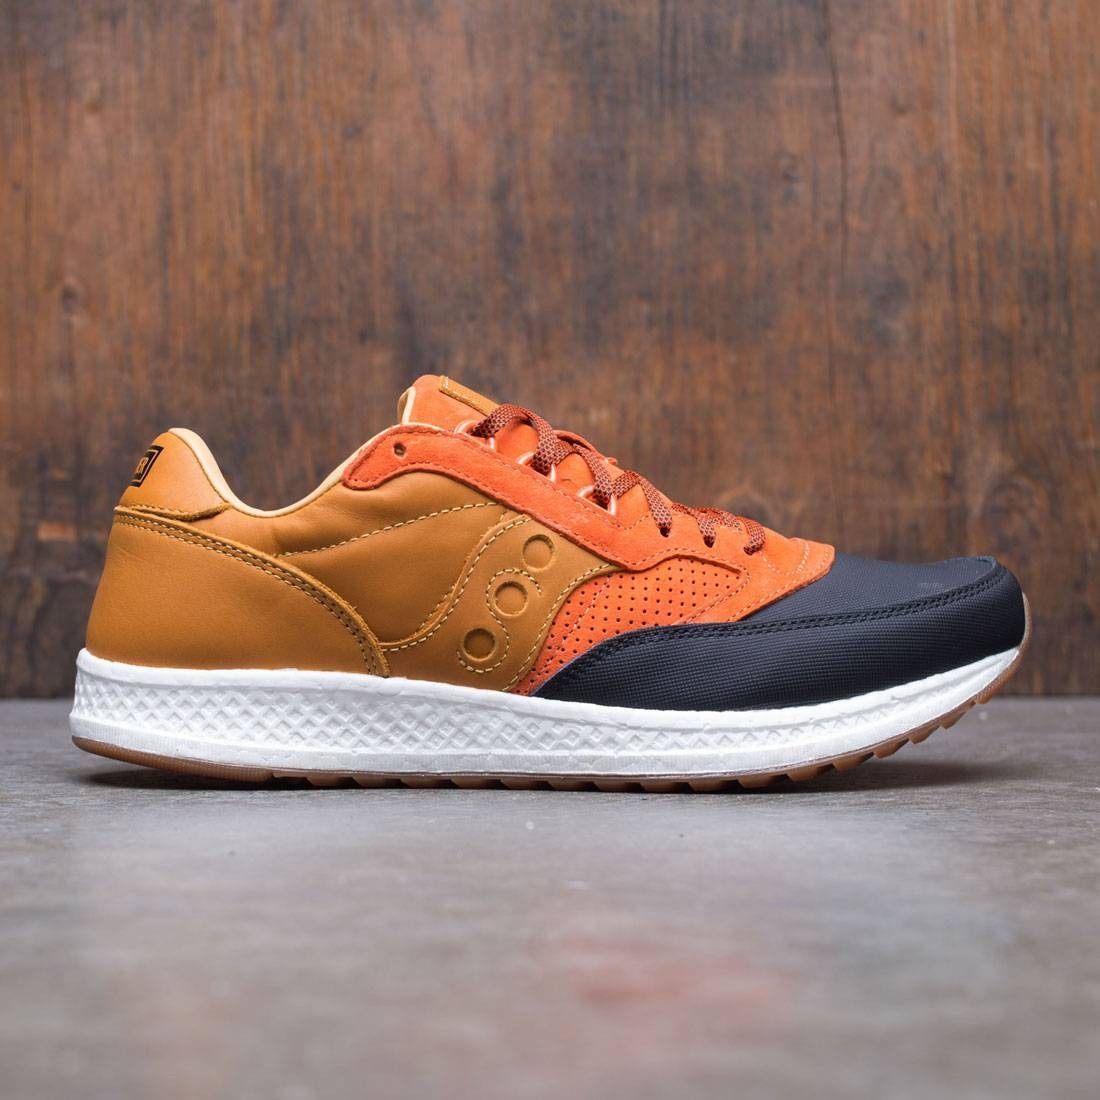 Saucony x Premier Men Freedom Runner - Stormlight (orange / black)